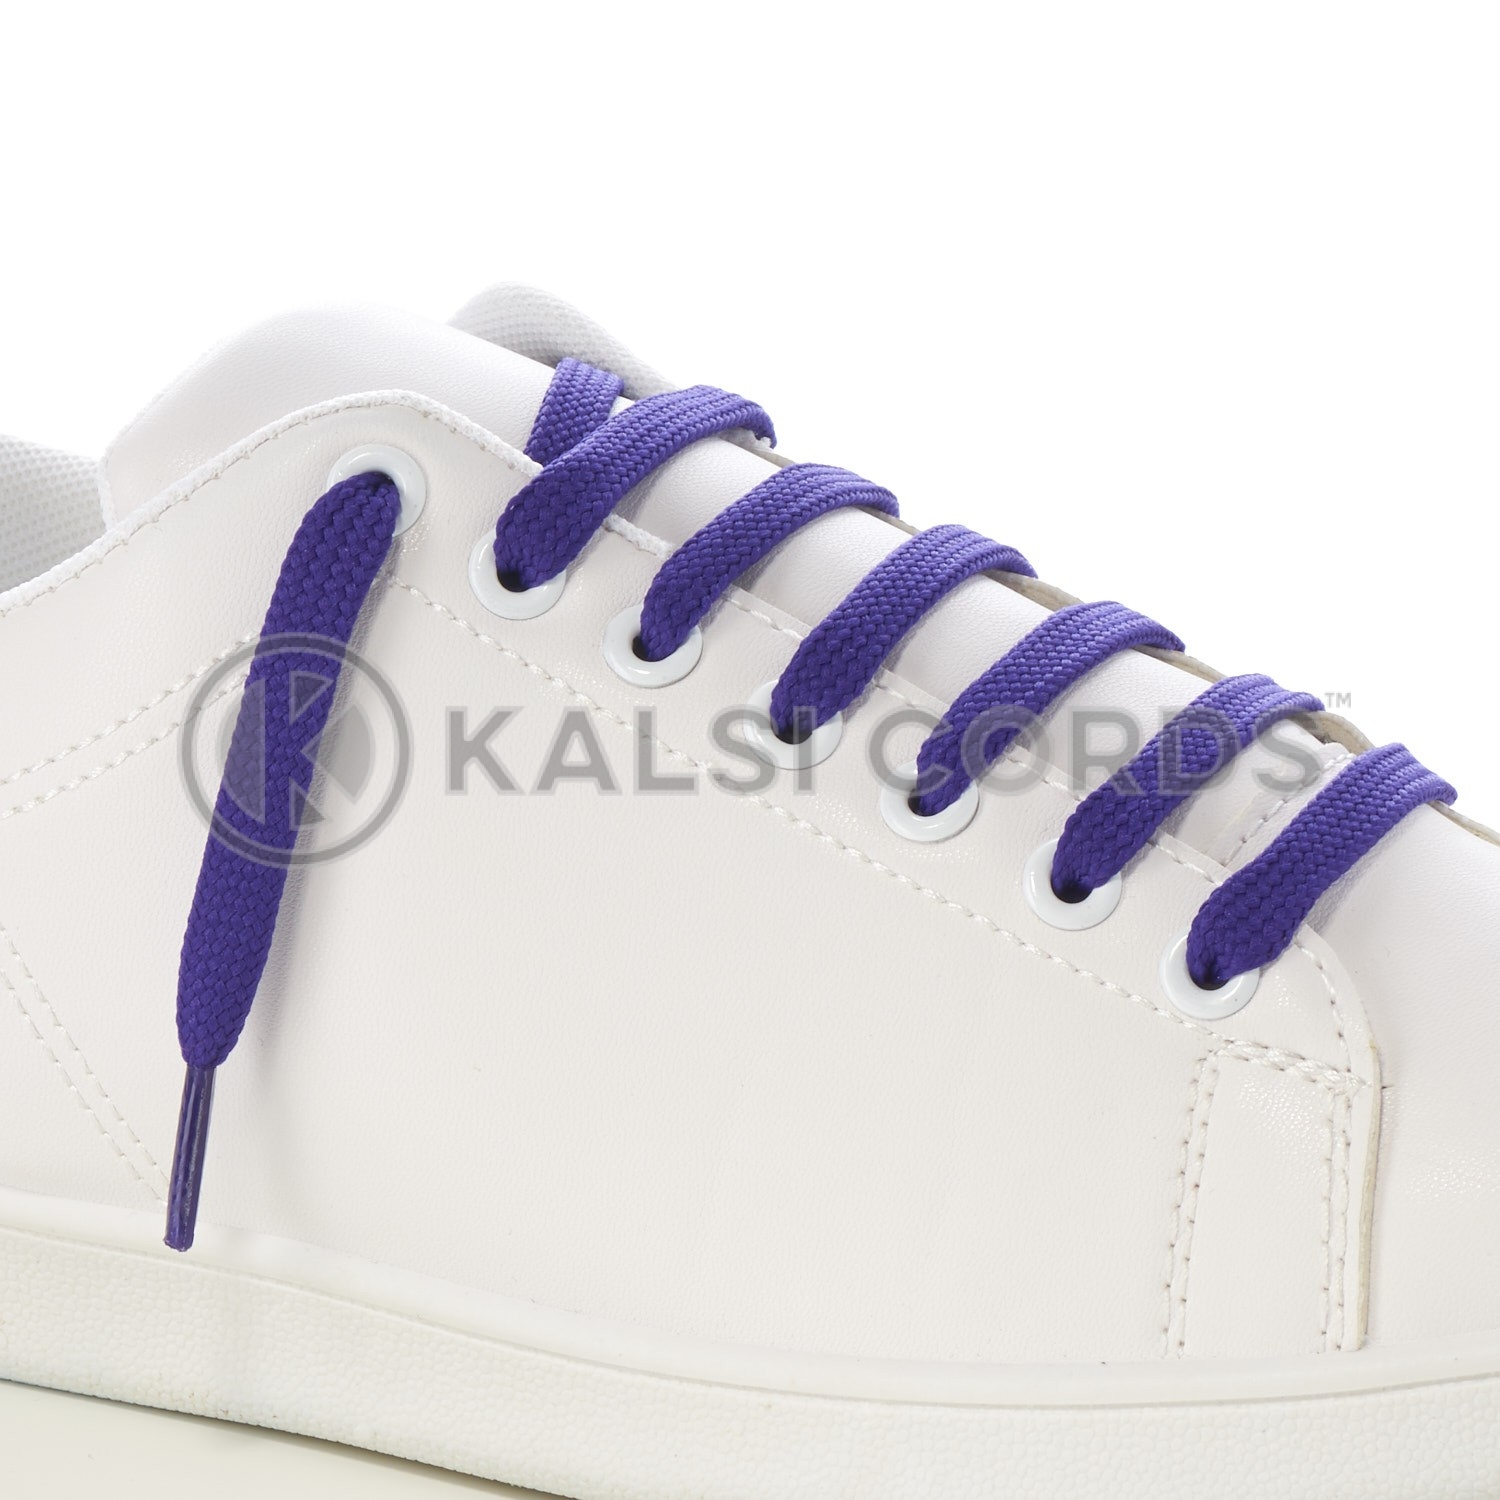 9mm Flat Shoe Laces Tubular Purple PG3112 Sports Trainers Boots Footwear Drawstring Drawcord